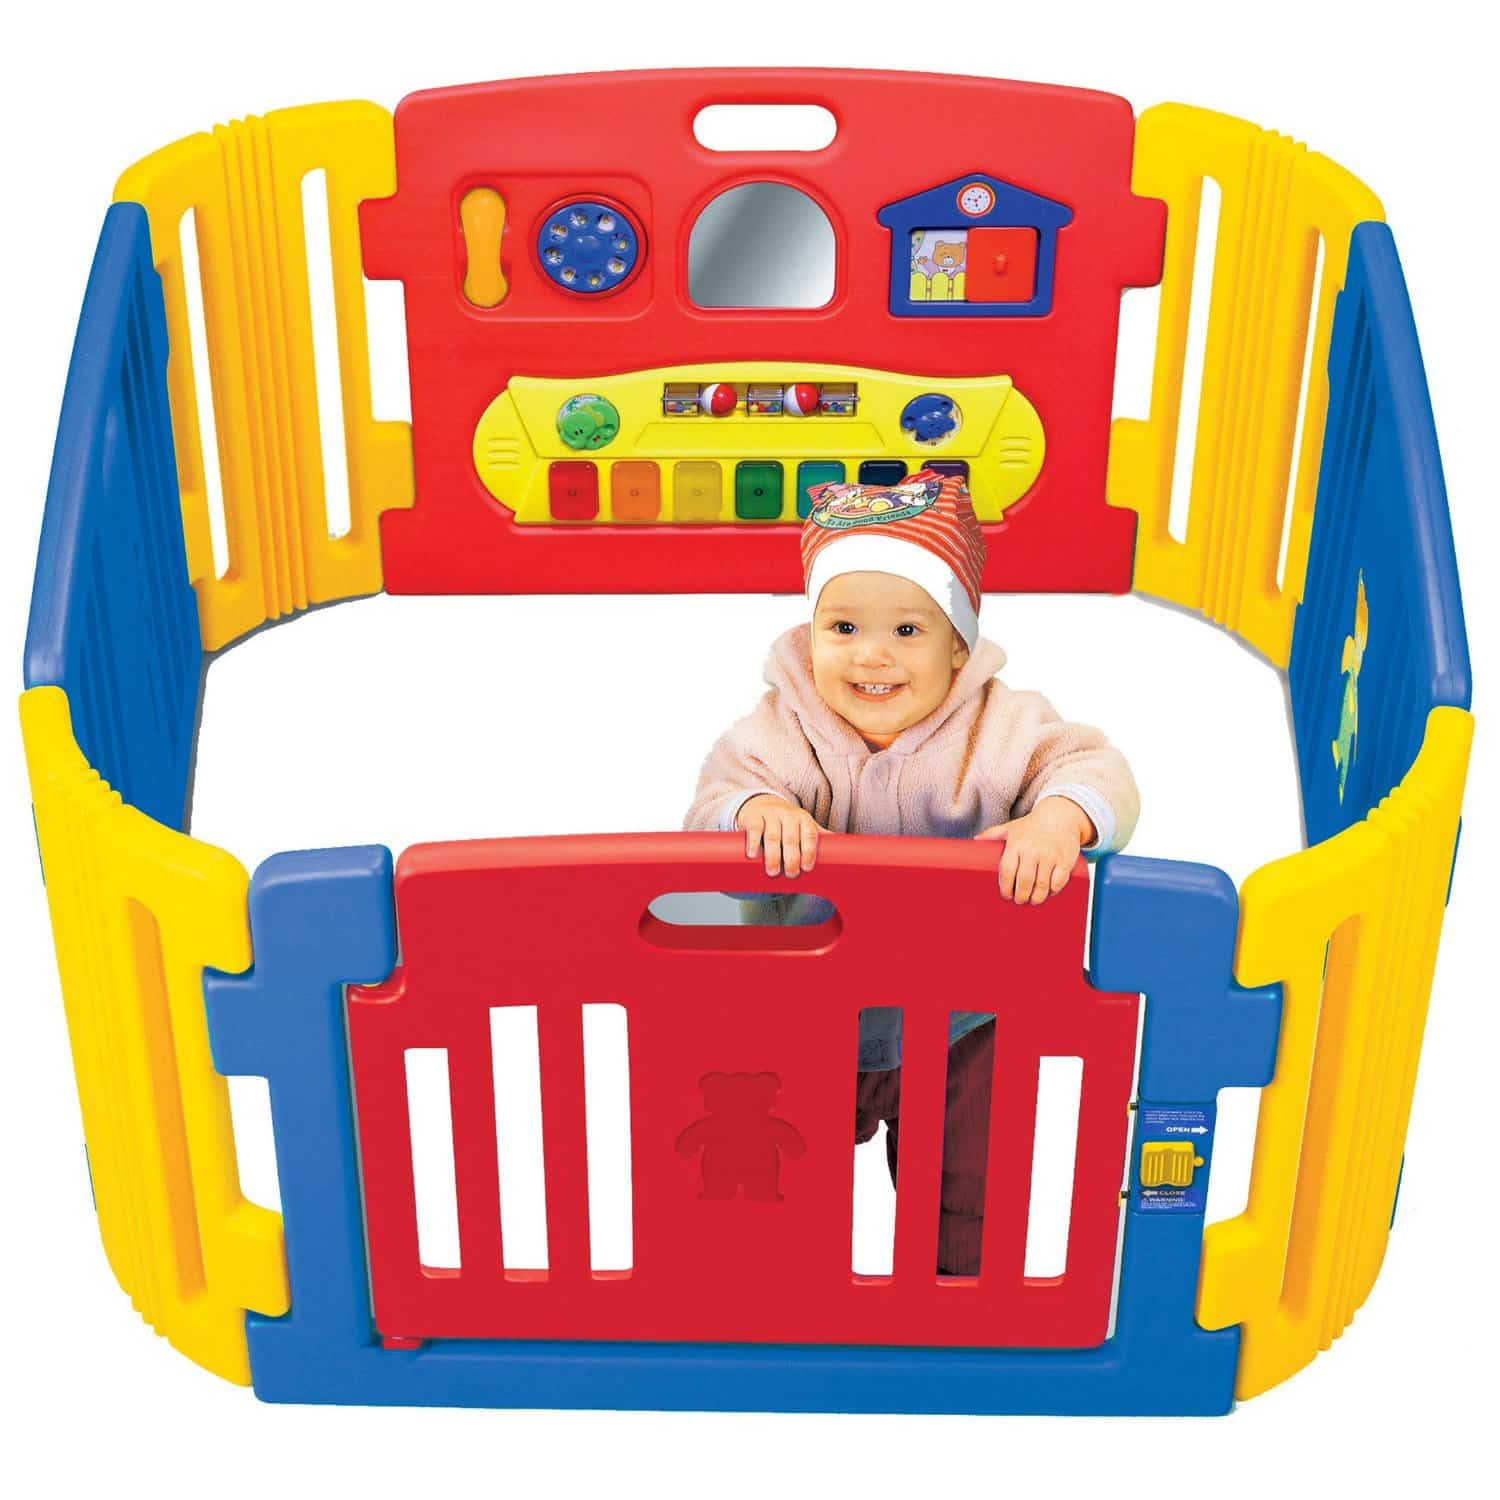 best play yards for toddlers - best play yard for toddlers with sounds